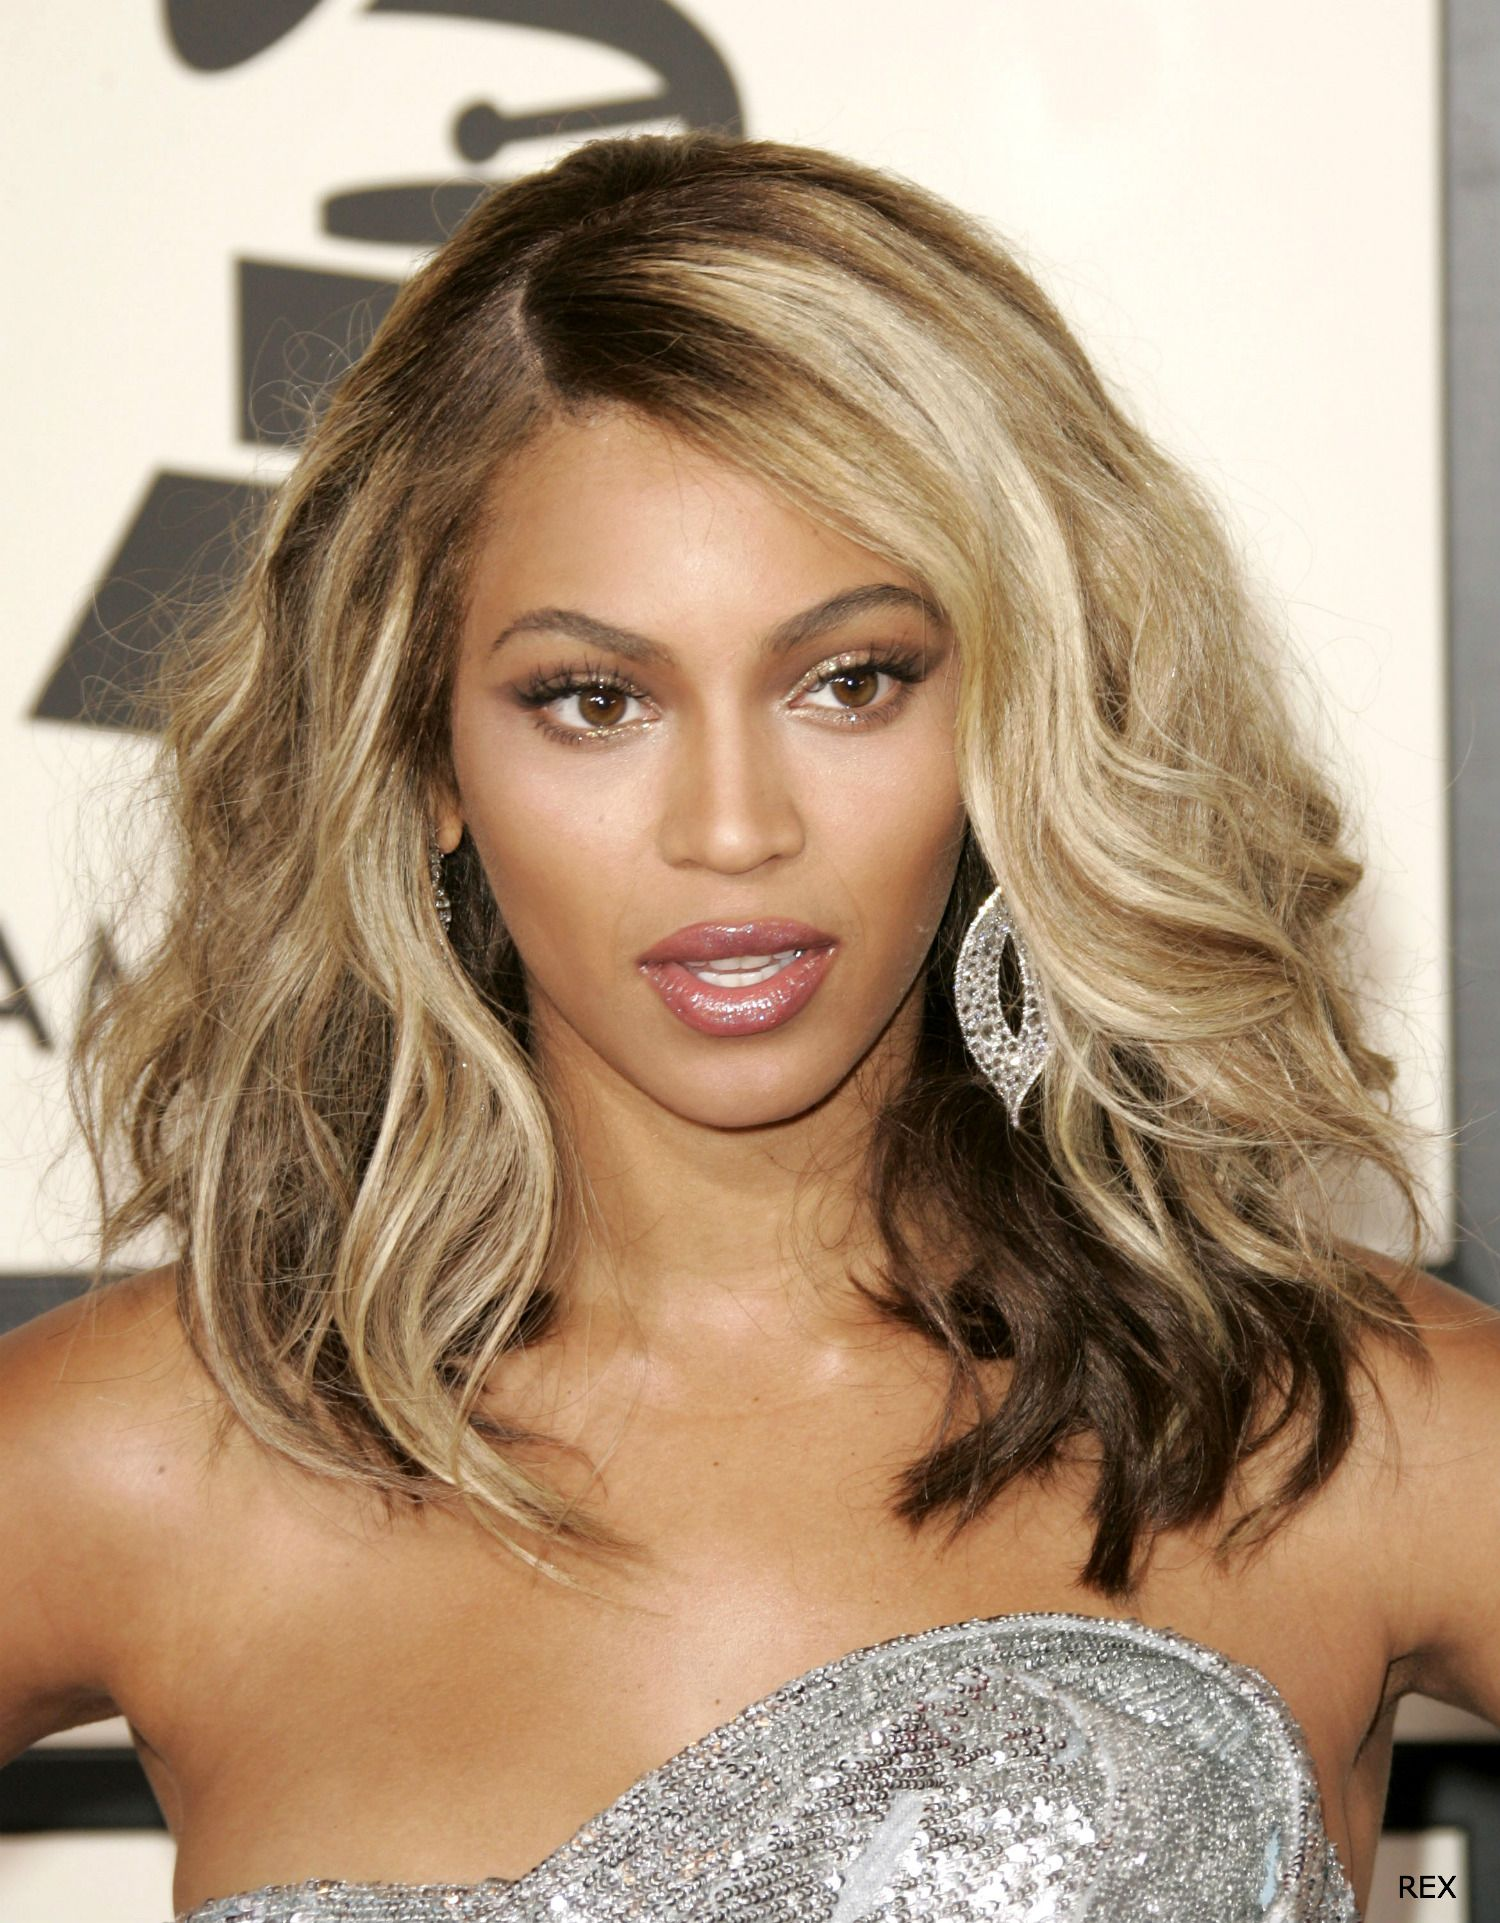 best 25+ beyonce hair color ideas on pinterest | beyonce new